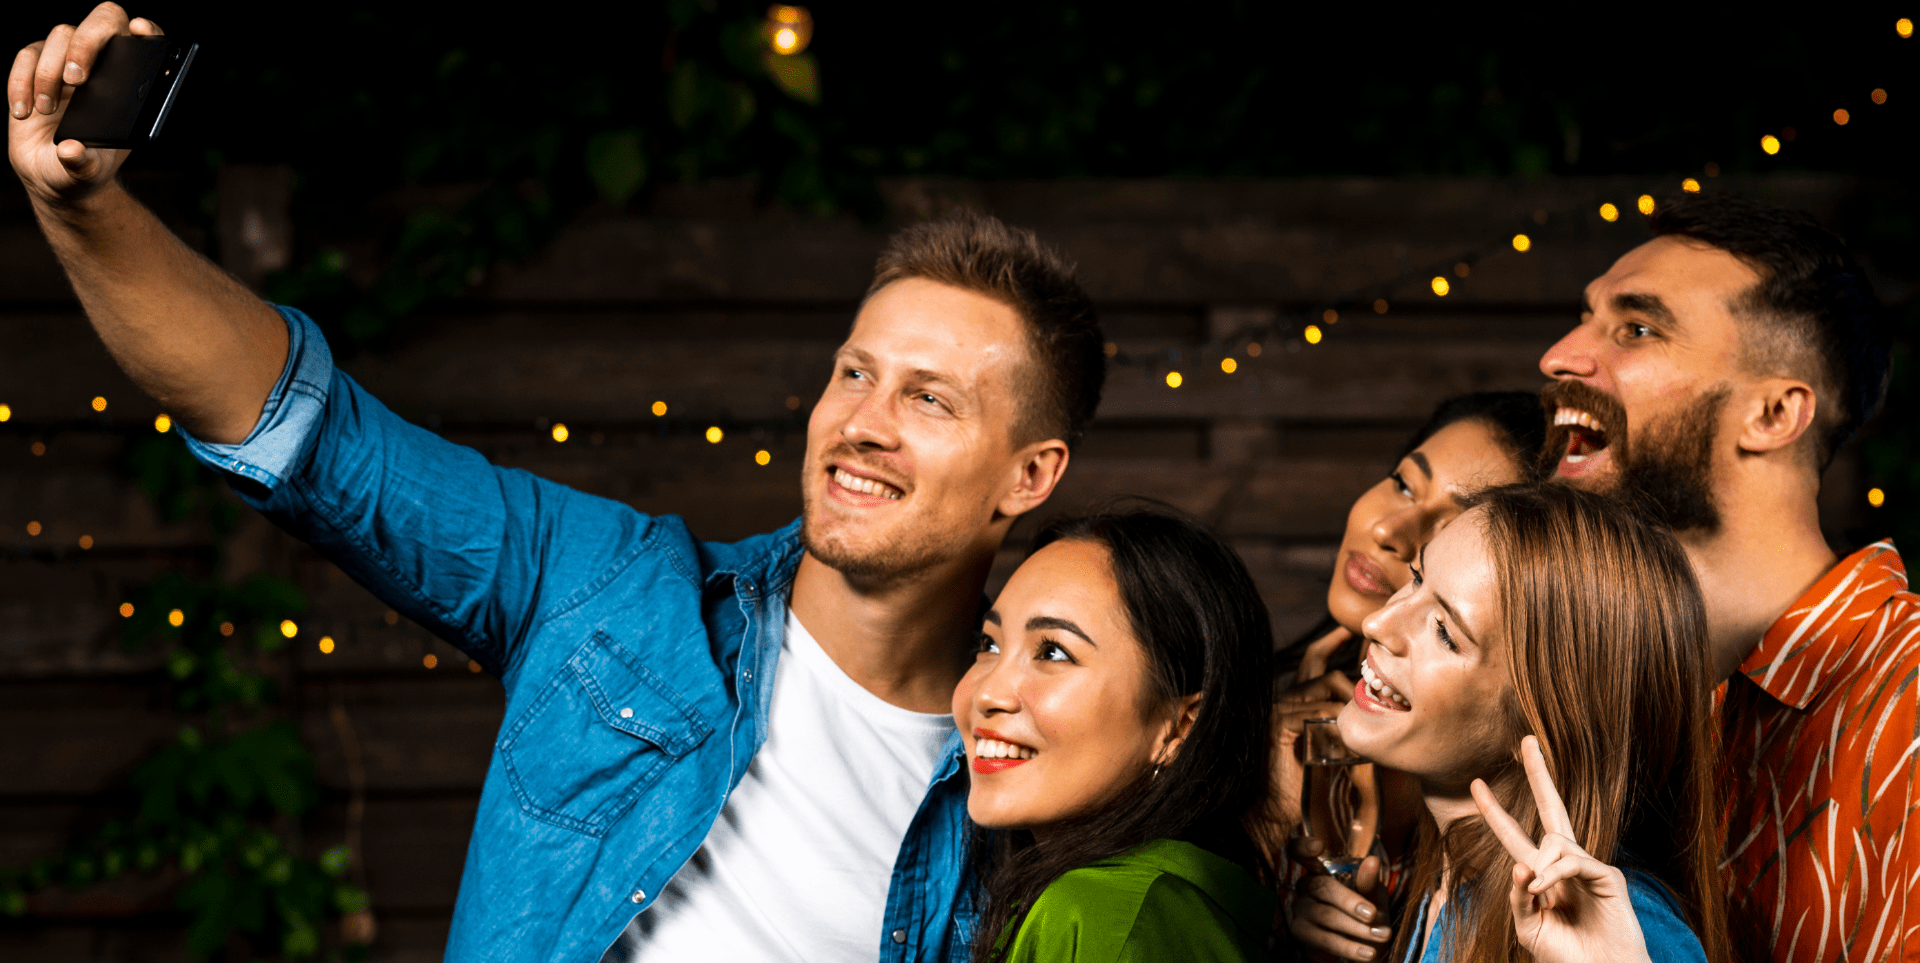 a group of friends smiling together at a backyard party taking a selfie